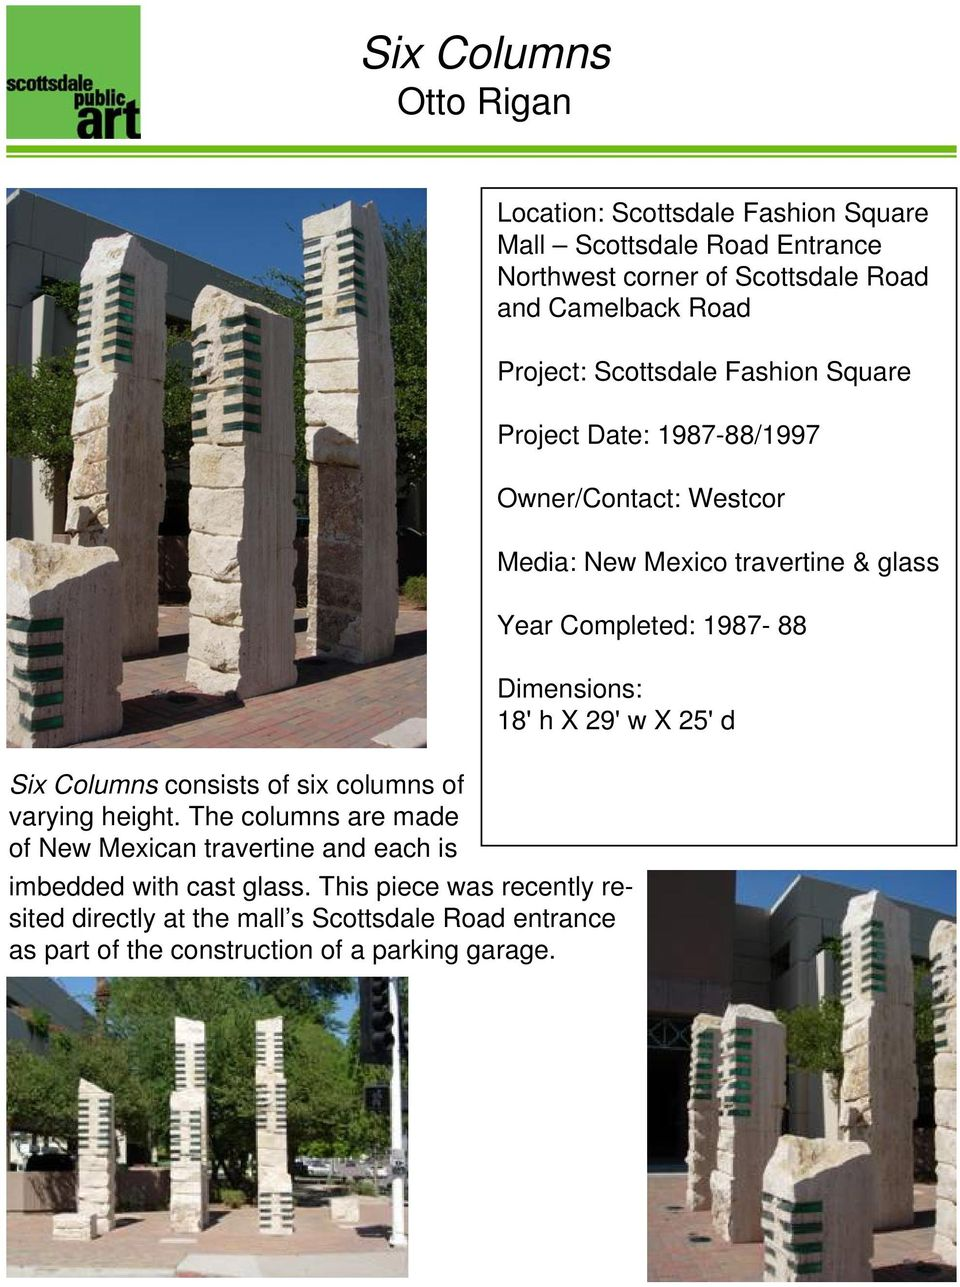 Dimensions: 18' h X 29' w X 25' d Six Columns consists of six columns of varying height.